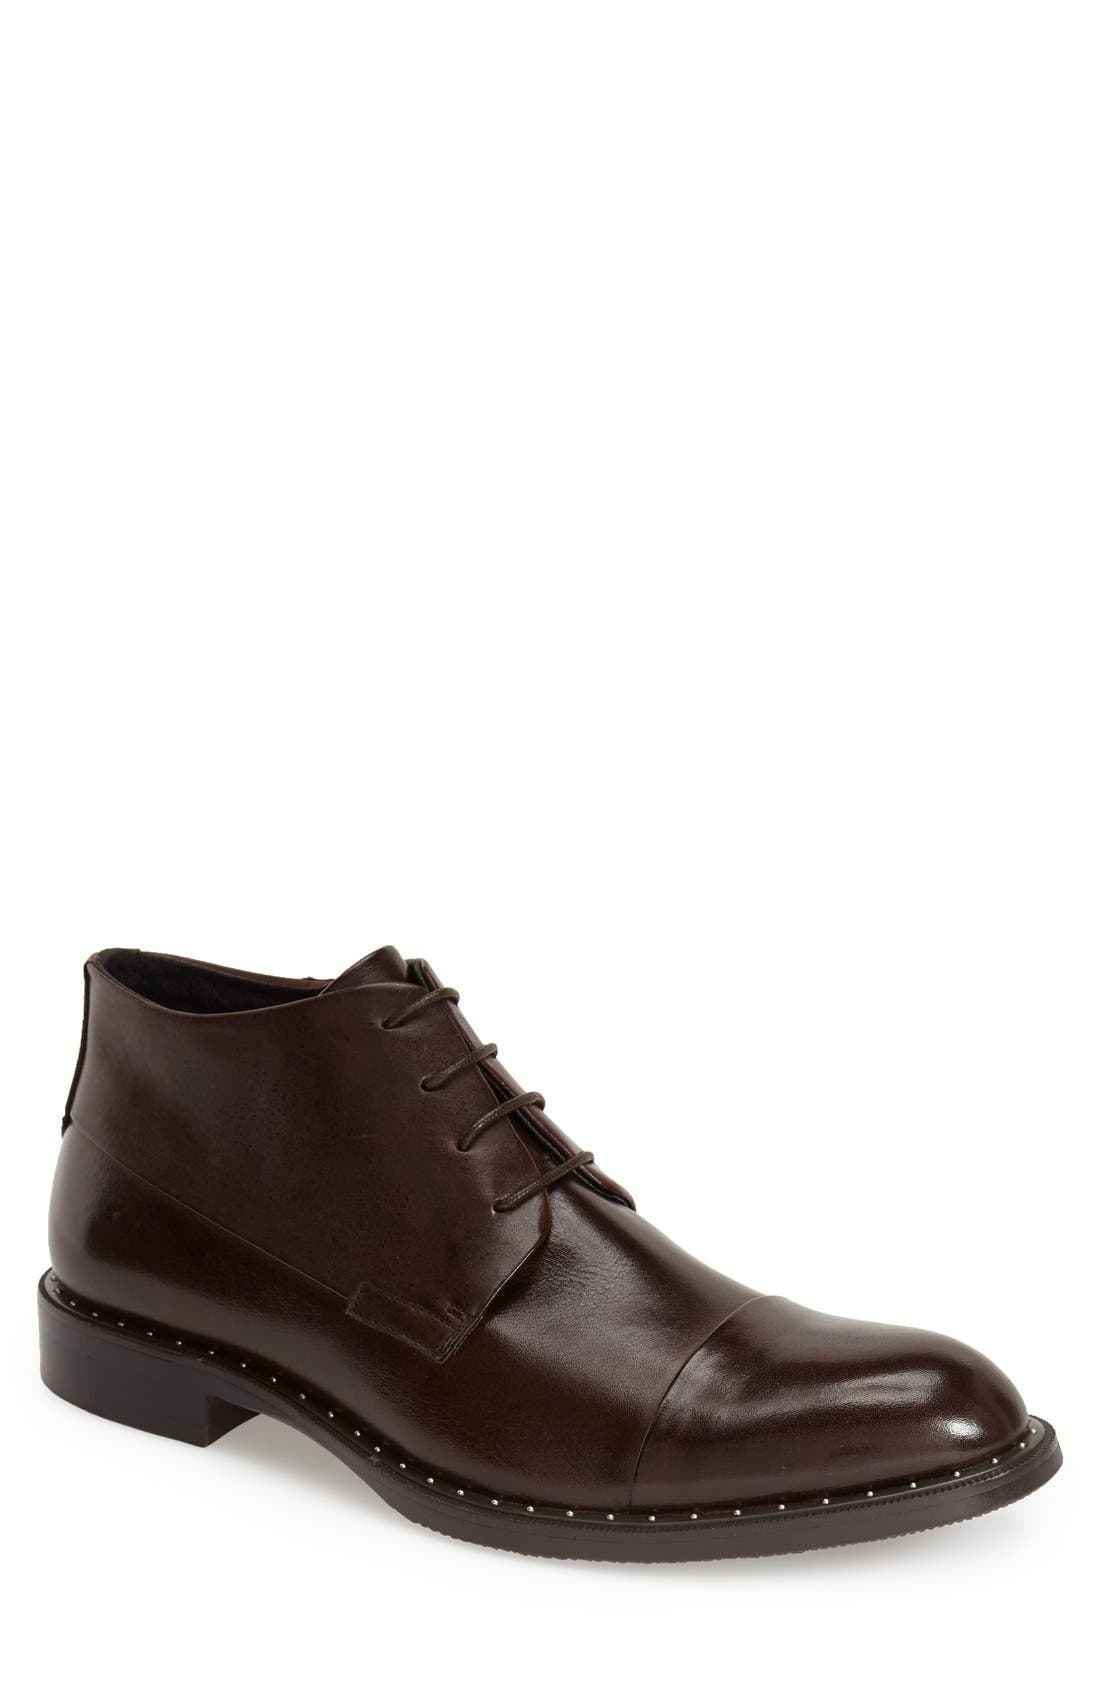 Zanzara 'Gela' Zip Cap Toe Chukka Boot (Men)